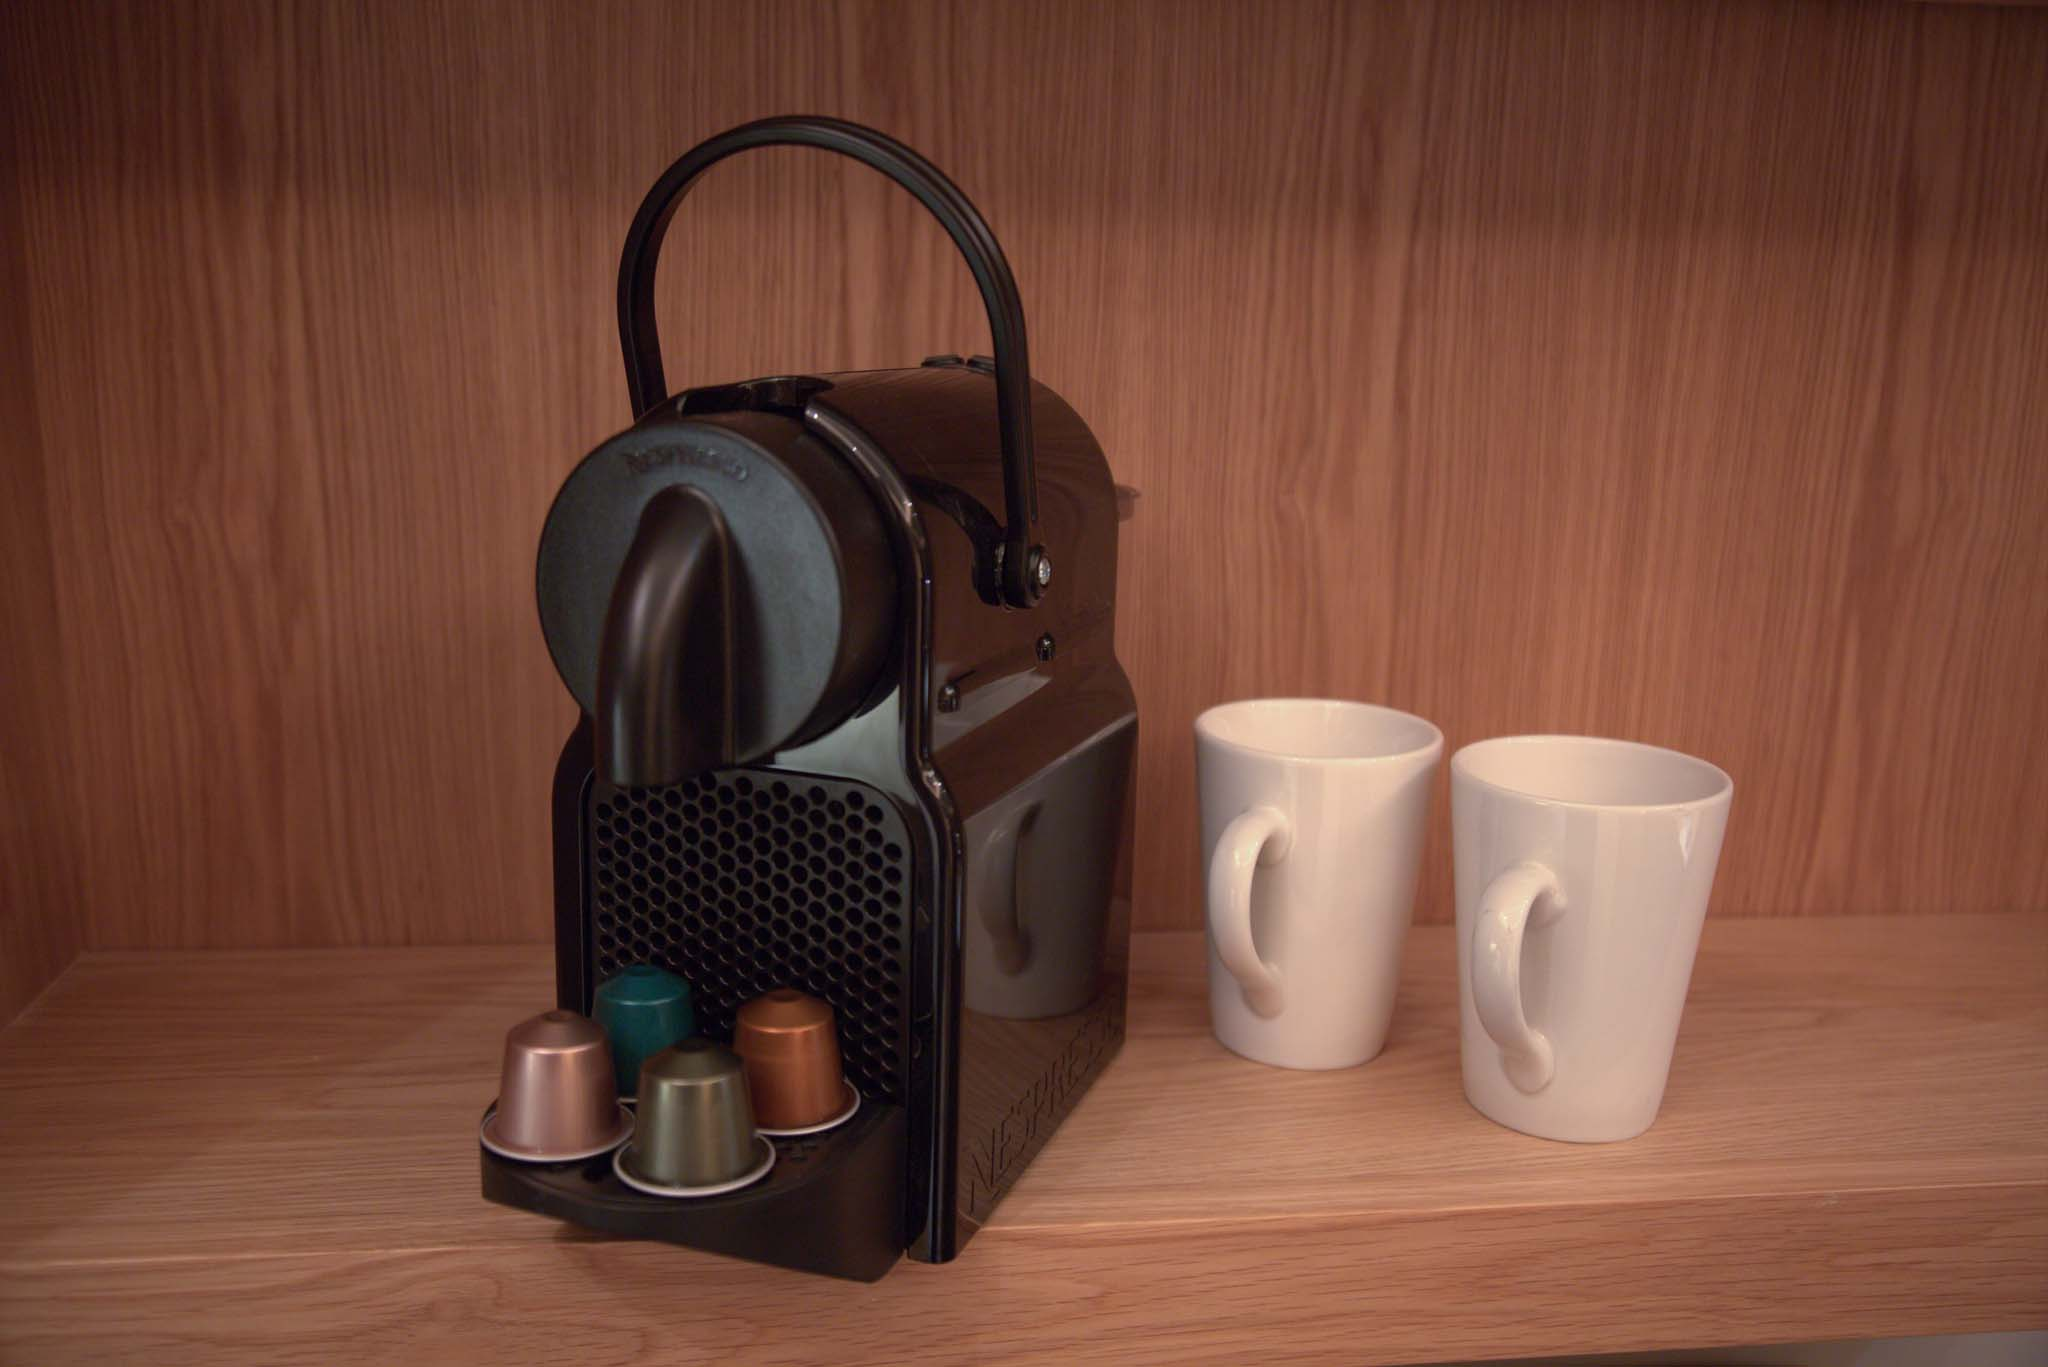 Nespresso Available in Residence Hotel Rooms, Galway